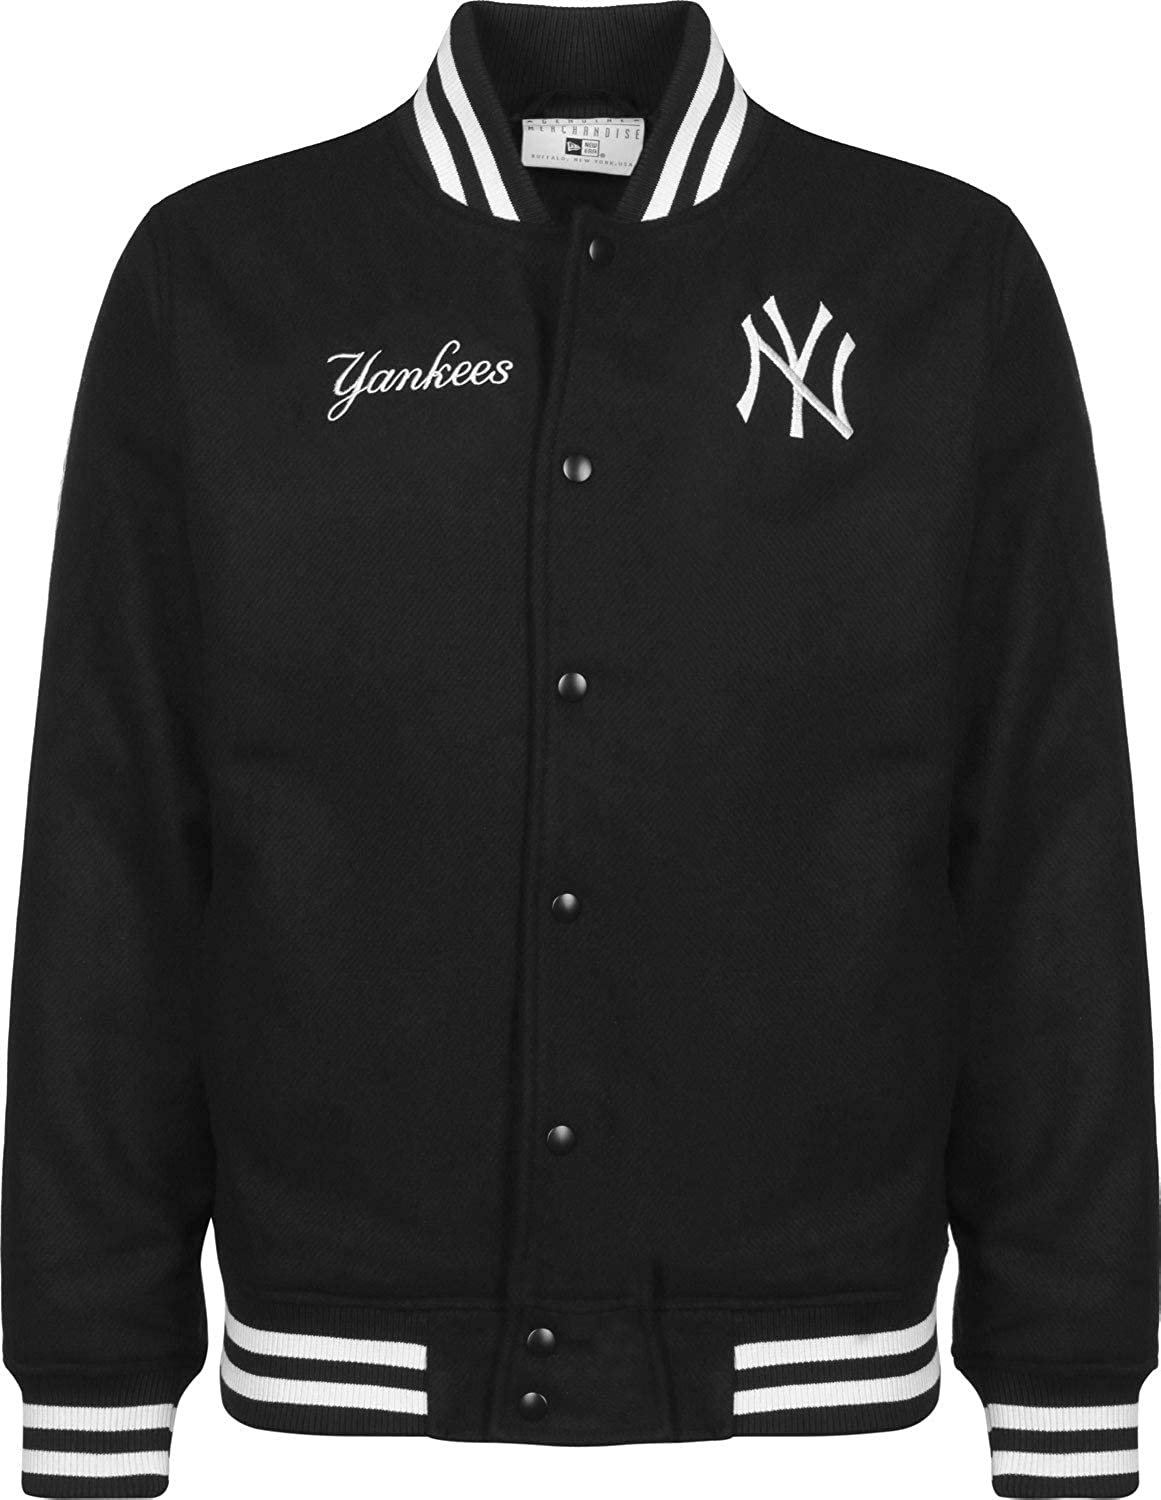 A NEW ERA Era York Yankees Chaqueta Bomber: Amazon.es: Ropa ...